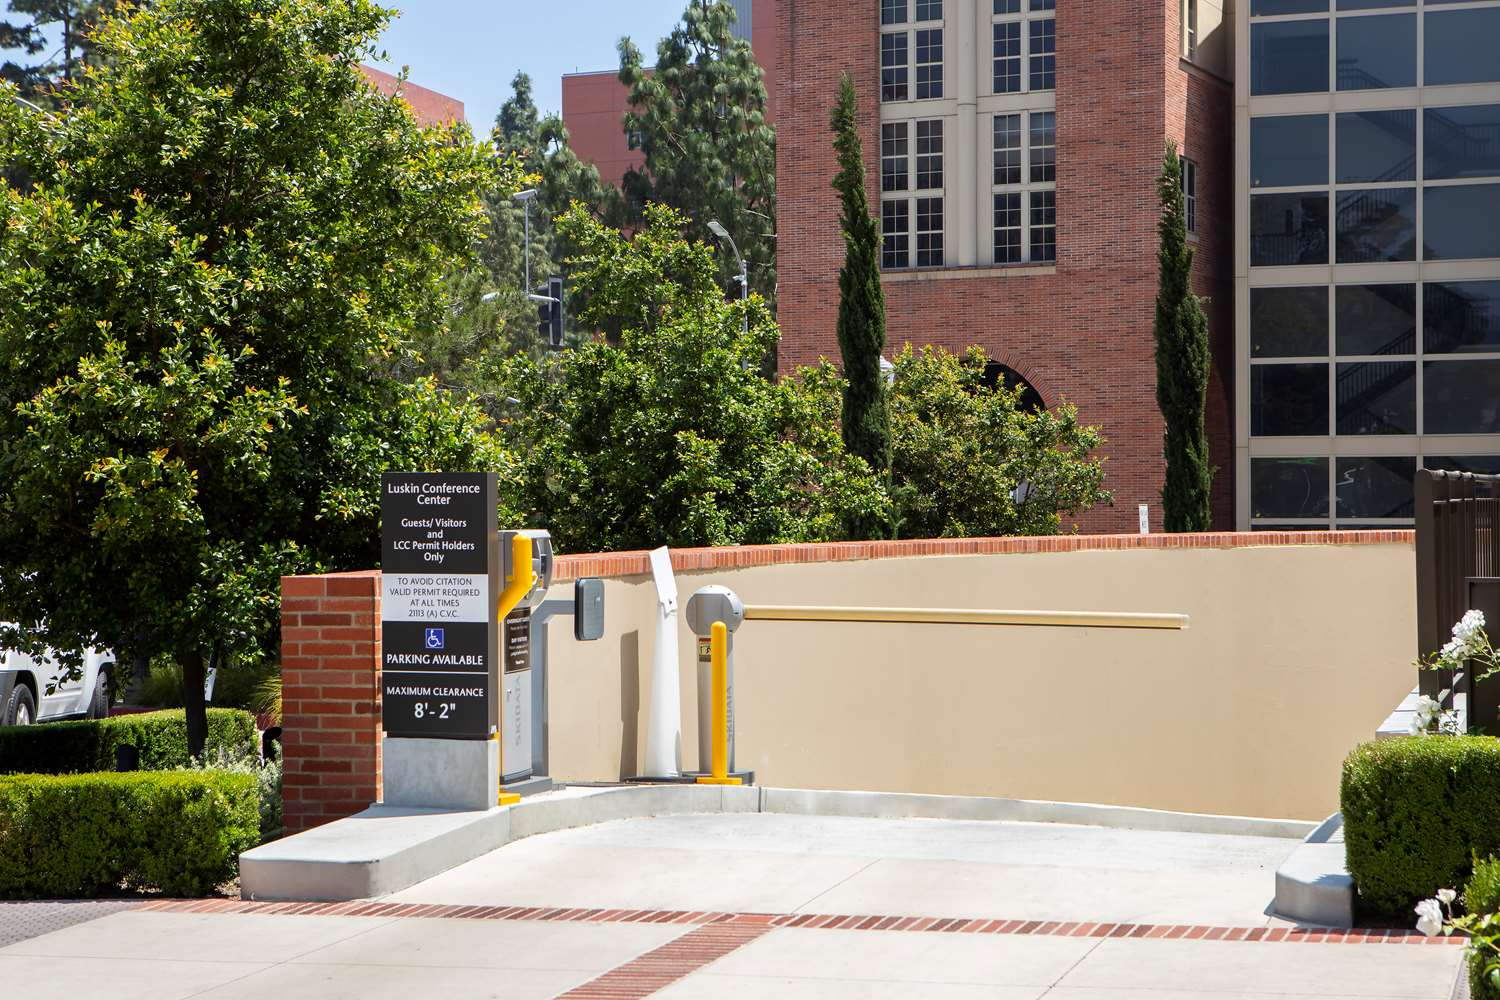 UCLA Luskin Conference Center Hotel Los Angeles, CA - See ... on ucla public affairs, ucla anderson, ucla department of social work,